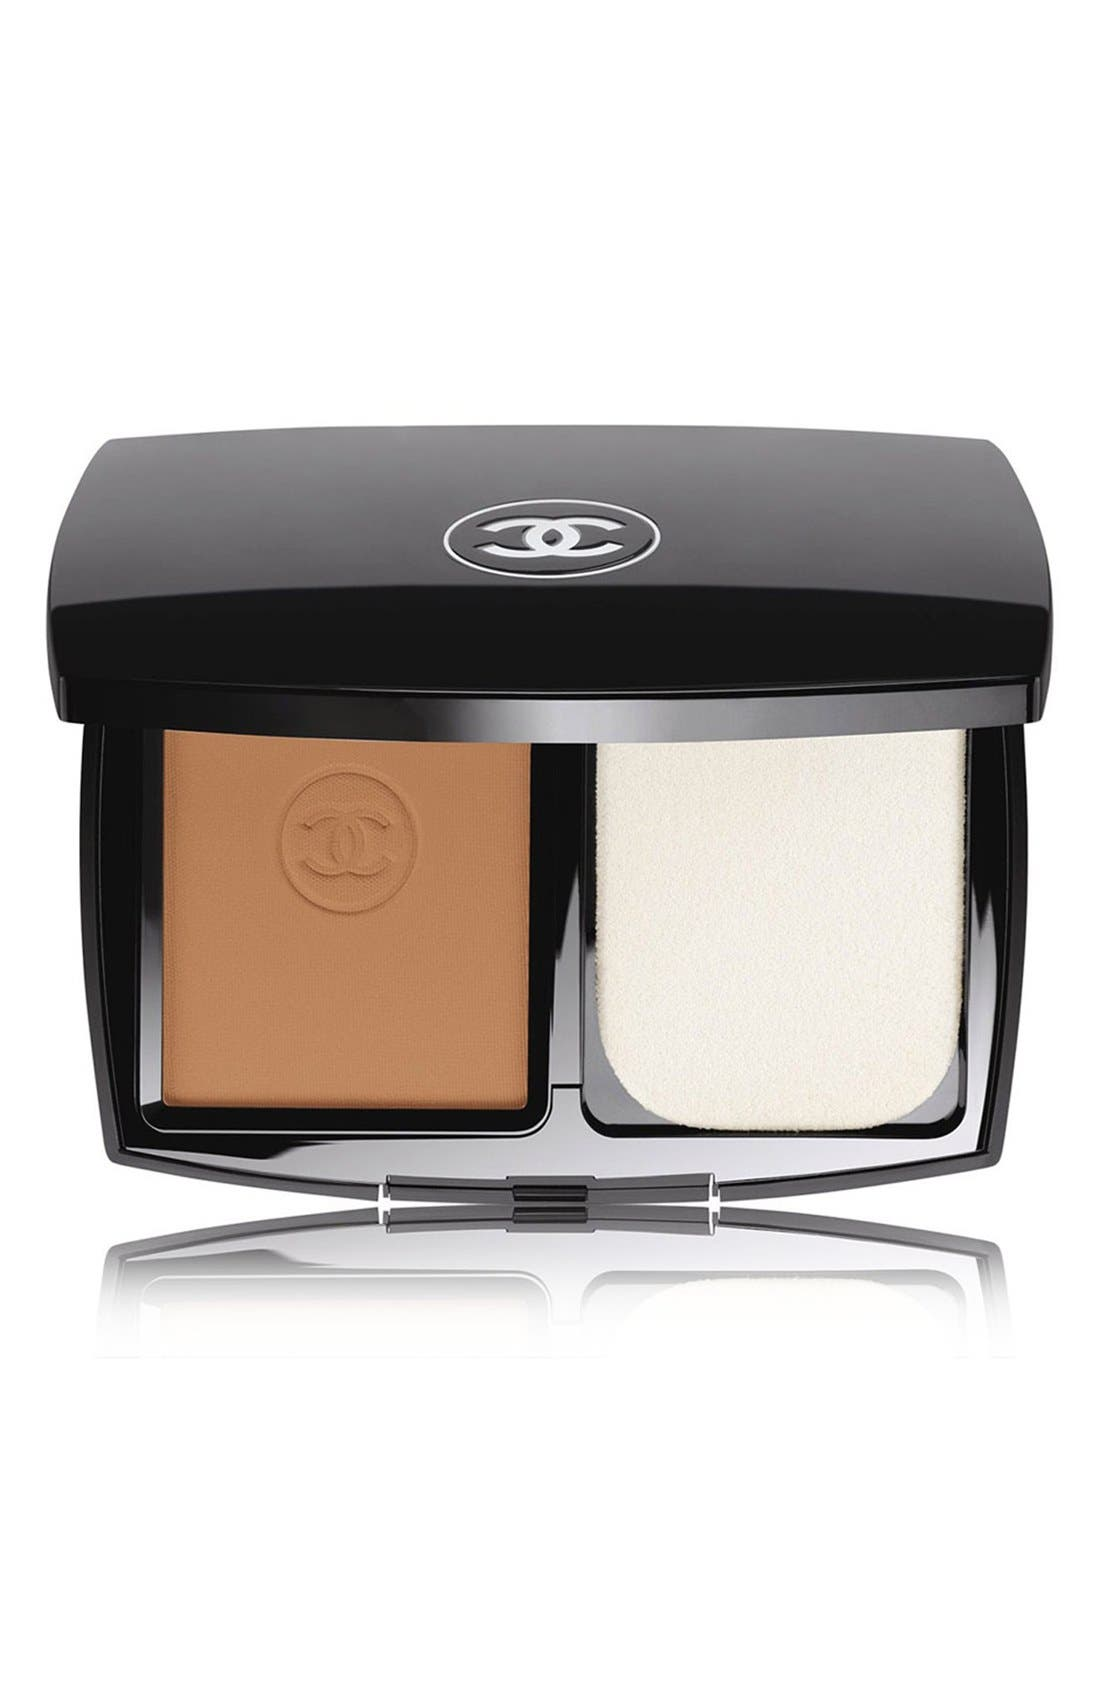 CHANEL, LE TEINT ULTRA TENUE<br />Ultrawear Flawless Compact Foundation Broad Spectrum SPF 15 Sunscreen, Main thumbnail 1, color, 91 CARAMEL